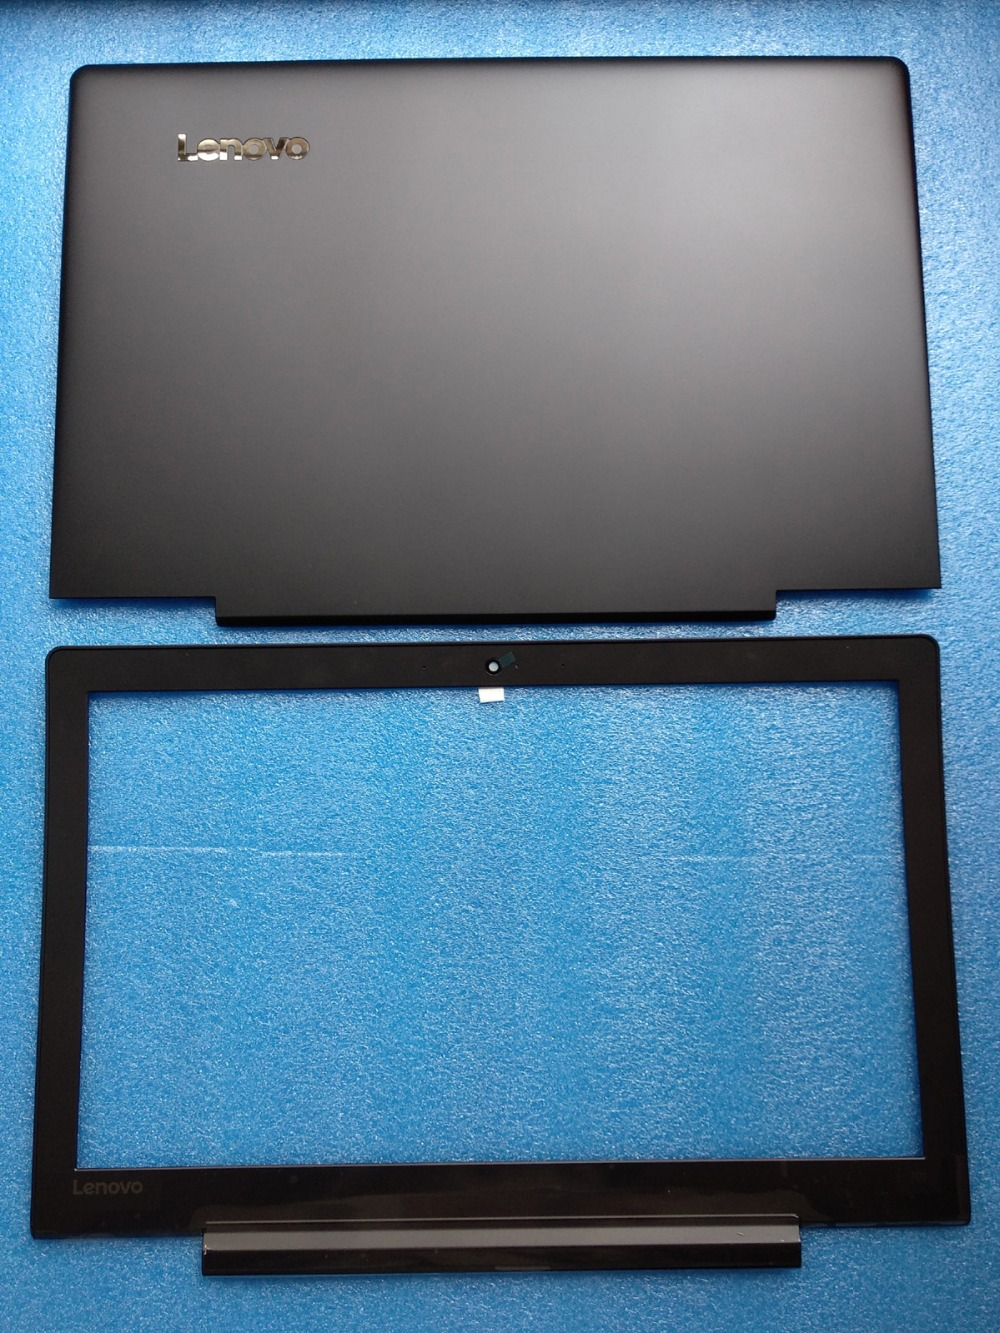 New cover case For Lenovo Ideapad 700-15 700-15isk Laptop LCD Back Cover Black/LCD Bezel Cover lcd nokia 700 n700